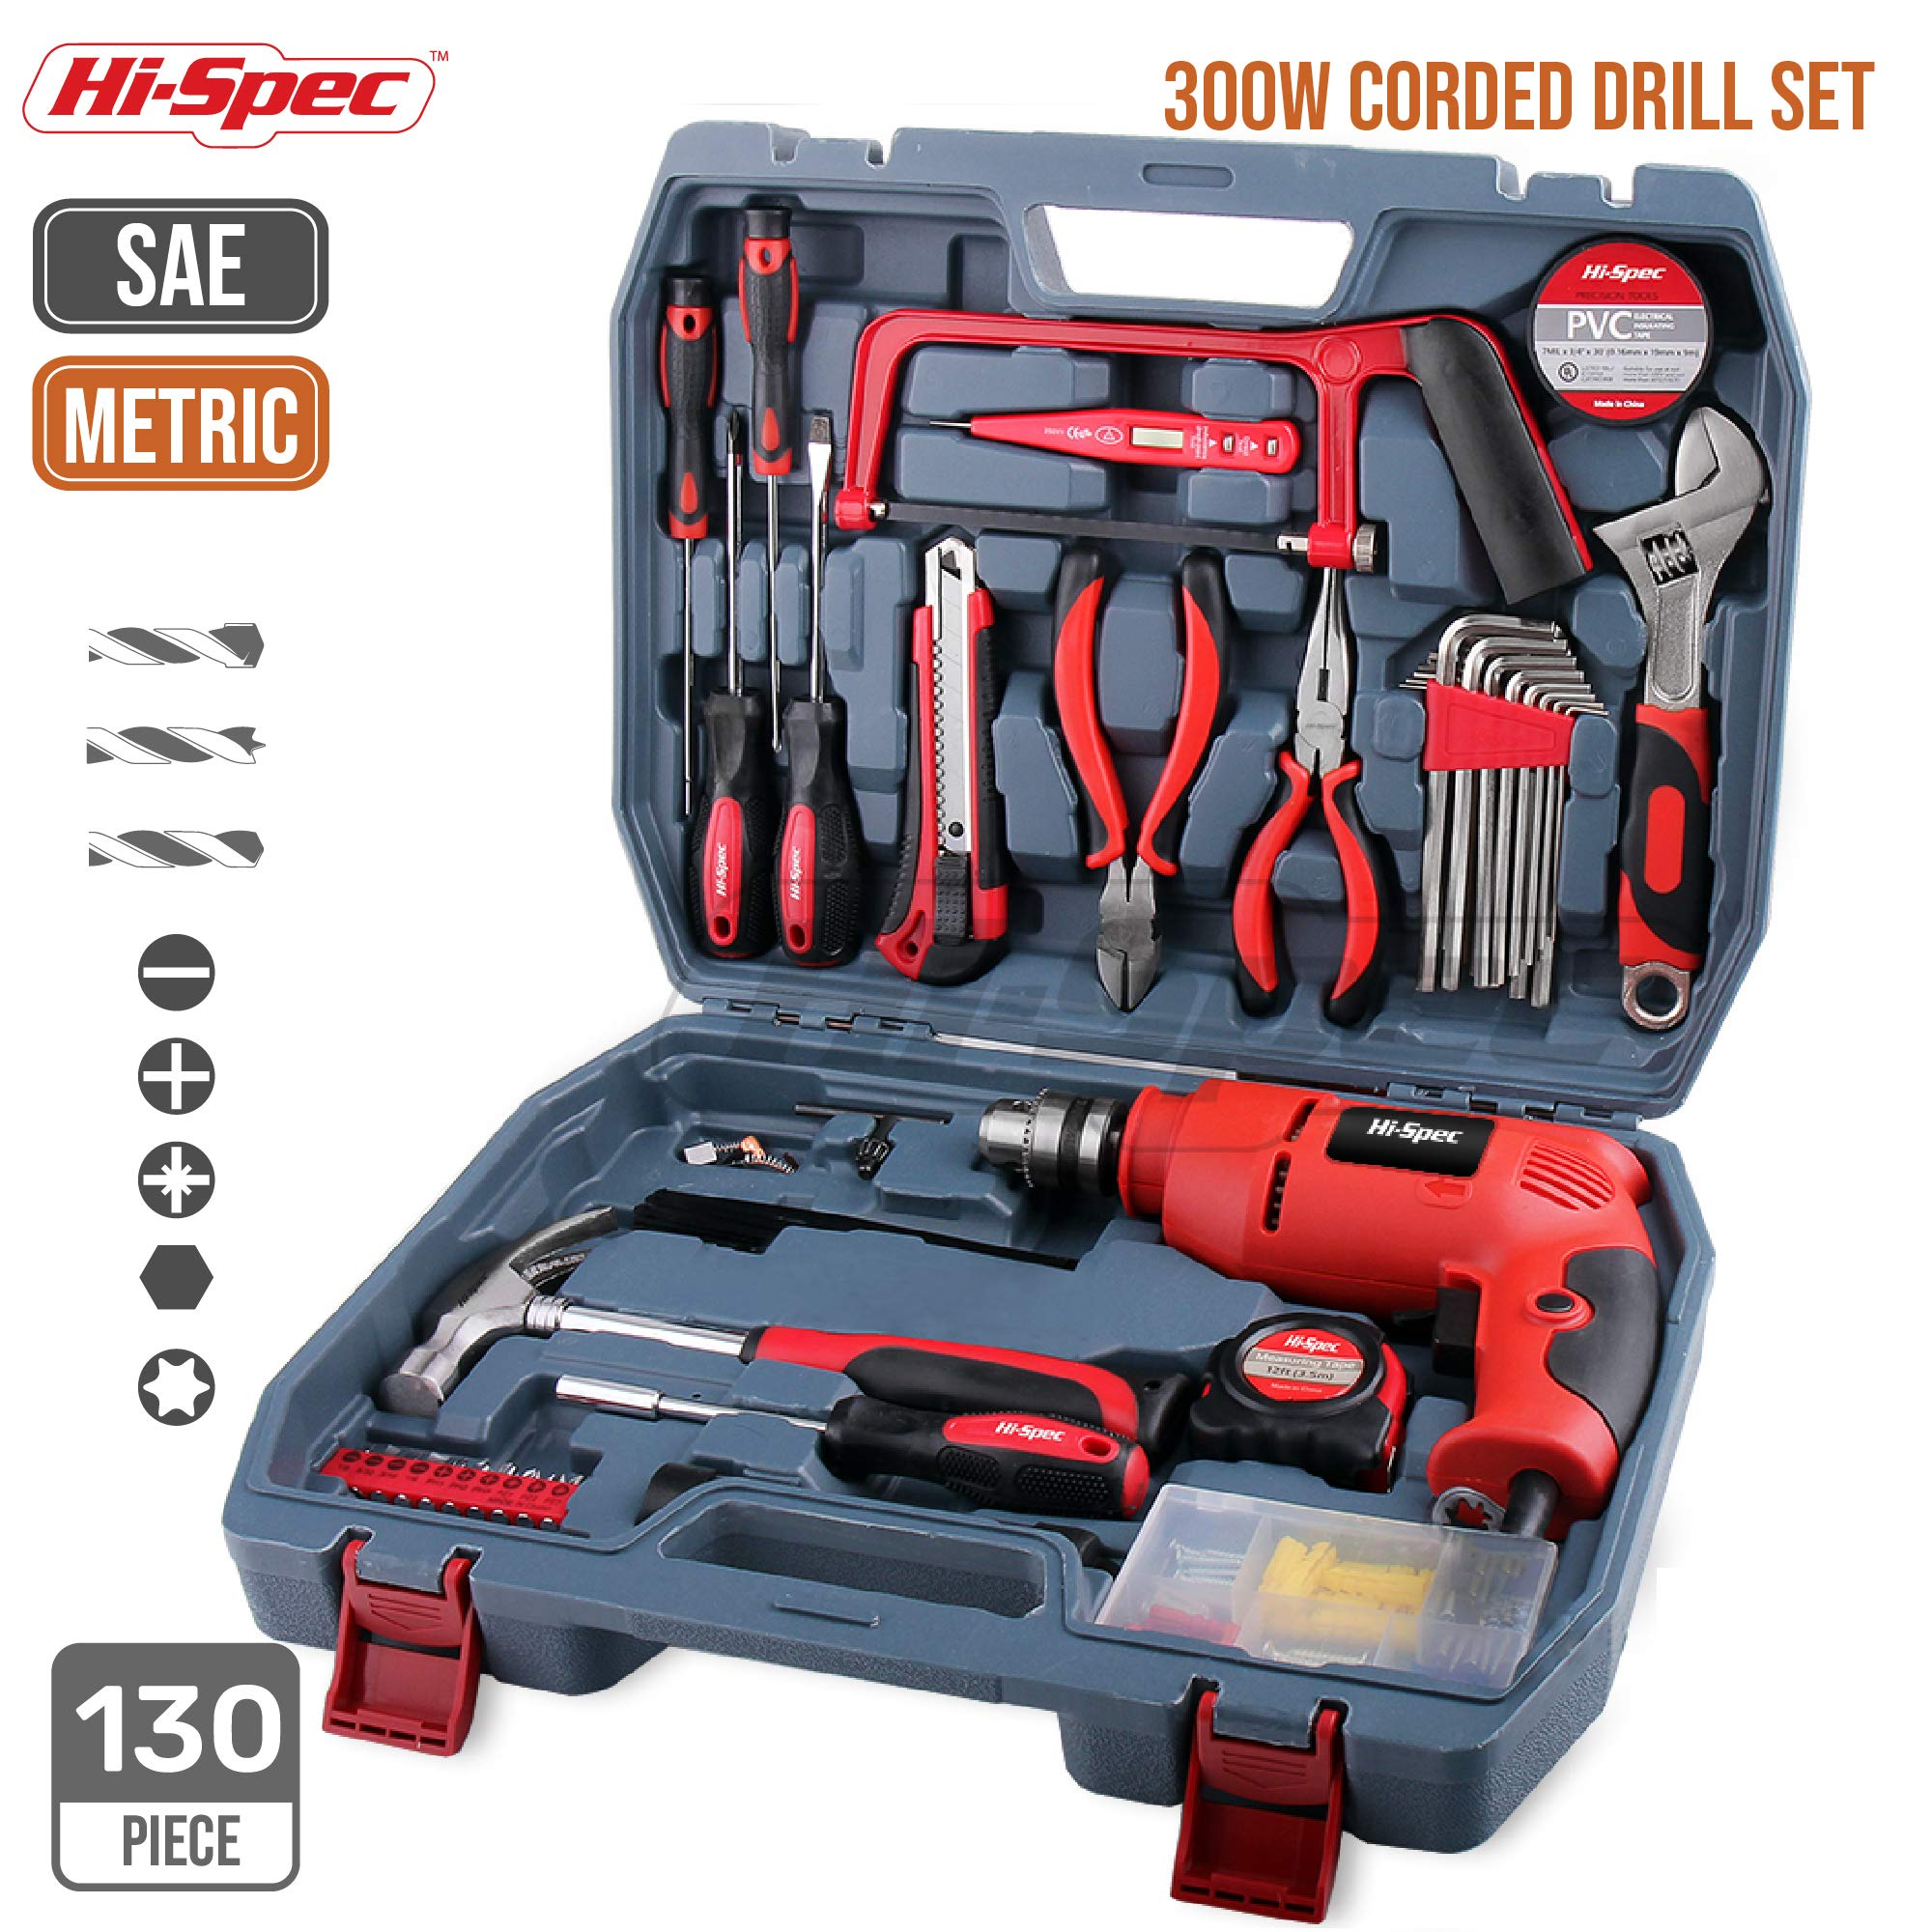 Hi-Spec 130pc 110V 300W Hammer Power Drill Tool Set Kit with Hacksaw, Pliers, Claw-Hammer, Wrench, Box Cutter, Hex Keys, Screwdrivers, Socket and Driver Bits Set, Voltage Tester inc. 60 accessories